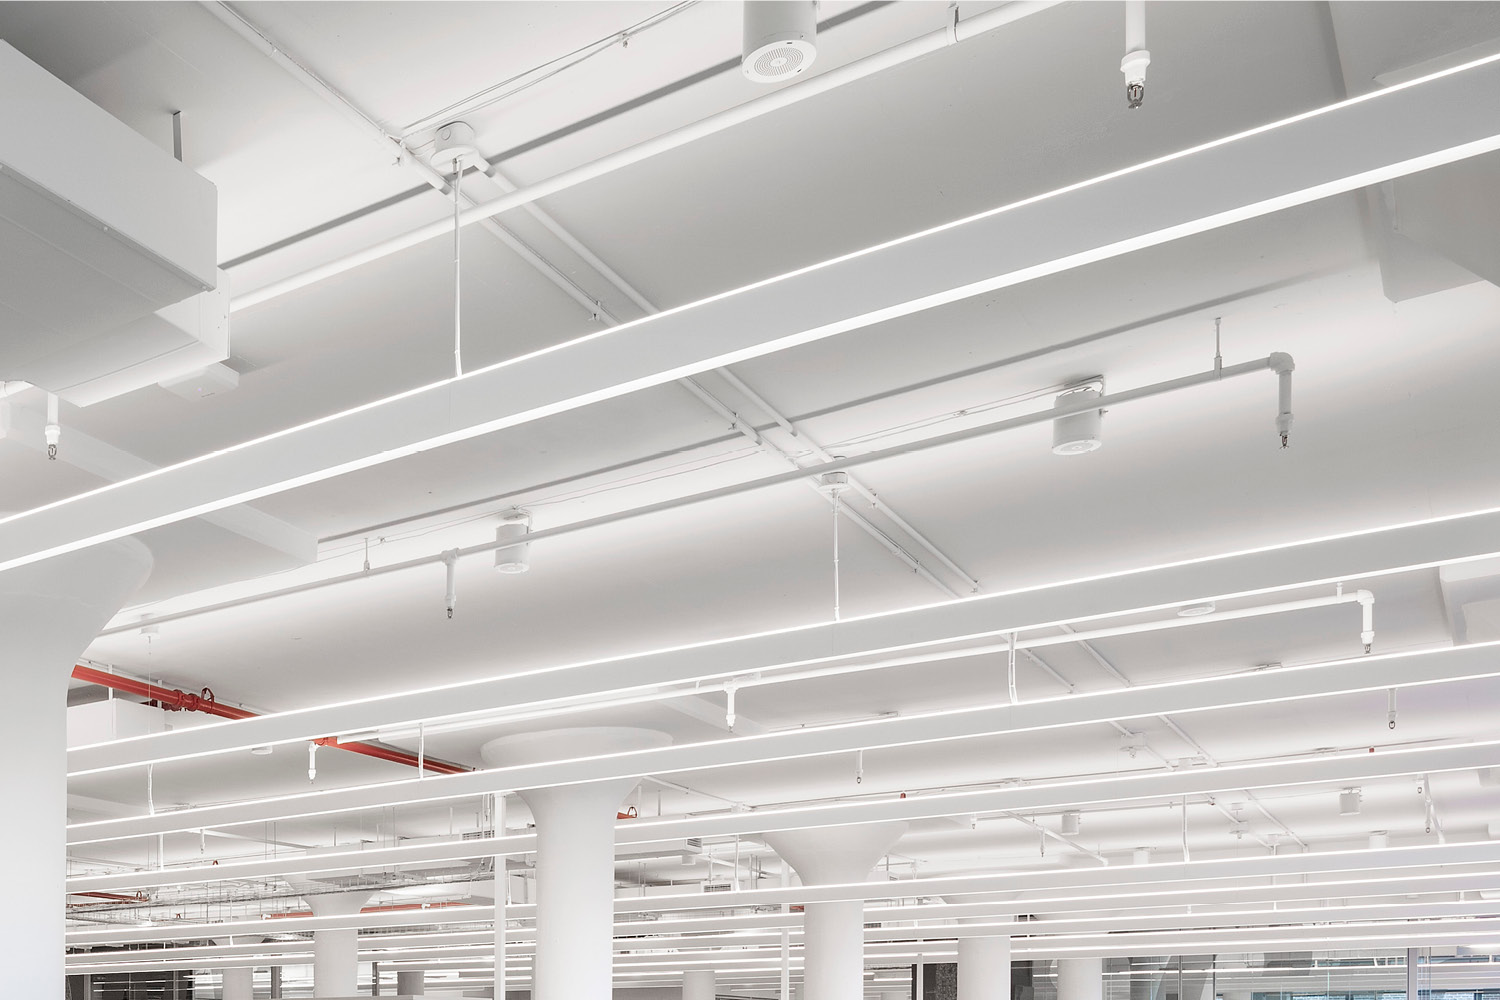 Slim, continuous light fixtures form a single field over workstations Michael Moran